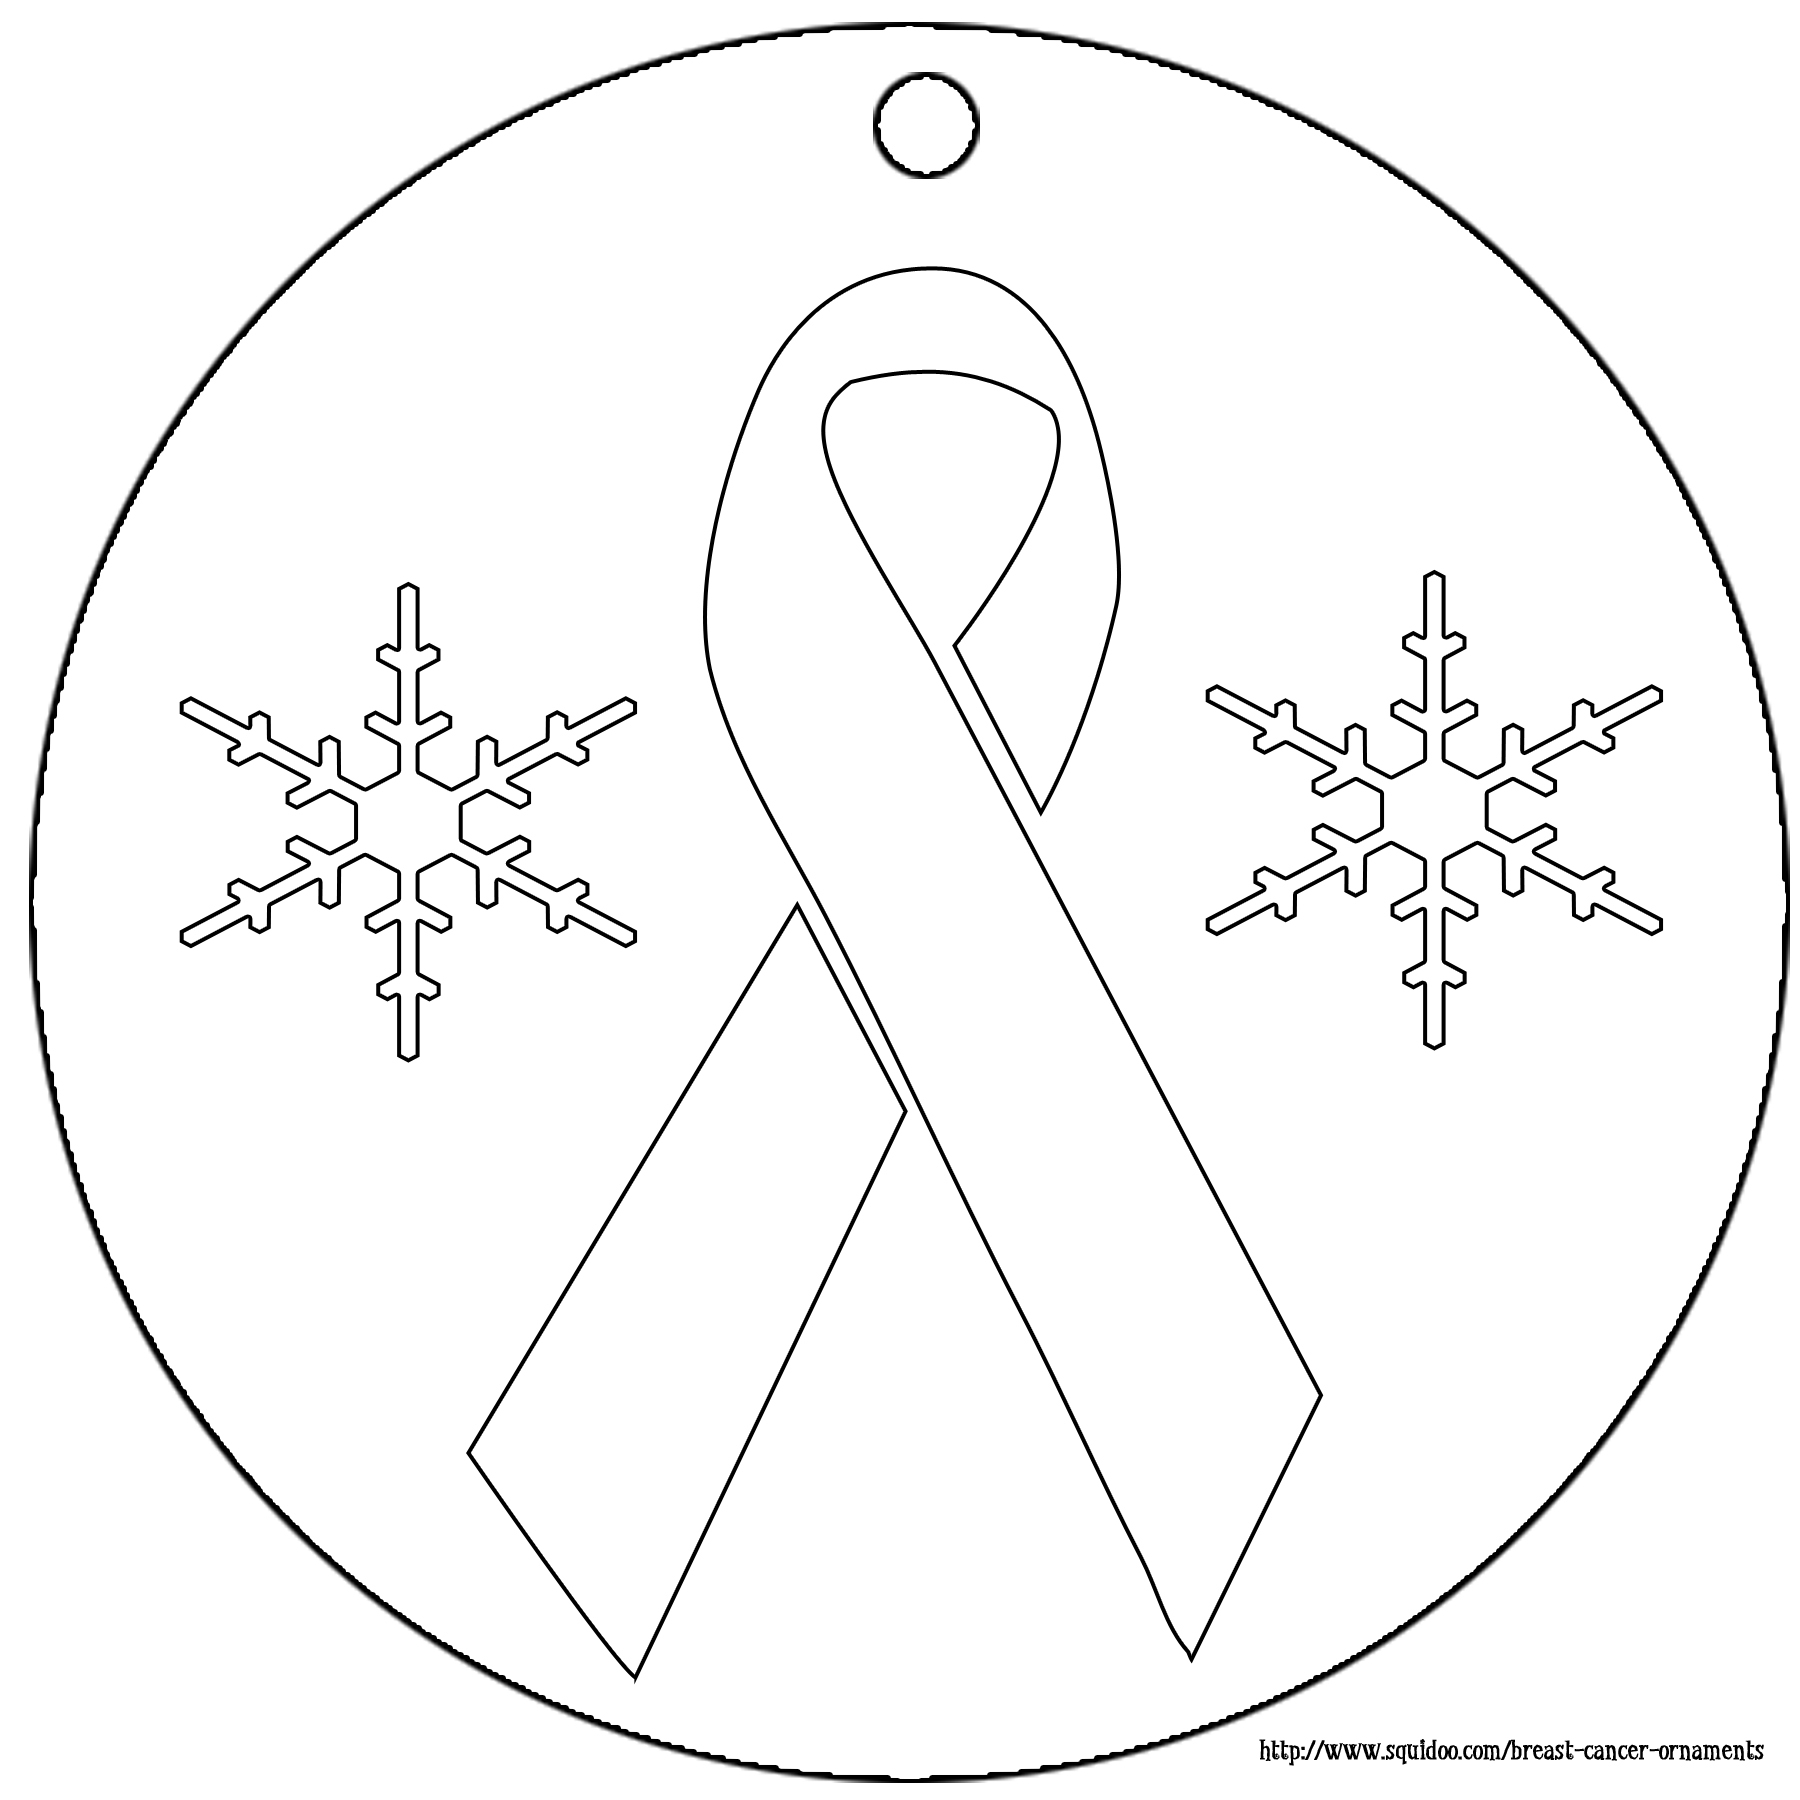 Free Printable Tattoo Designs Cancer Ribbon Stencil within Collection Of Cancer Ribbon Drawing at Getdrawings to Print